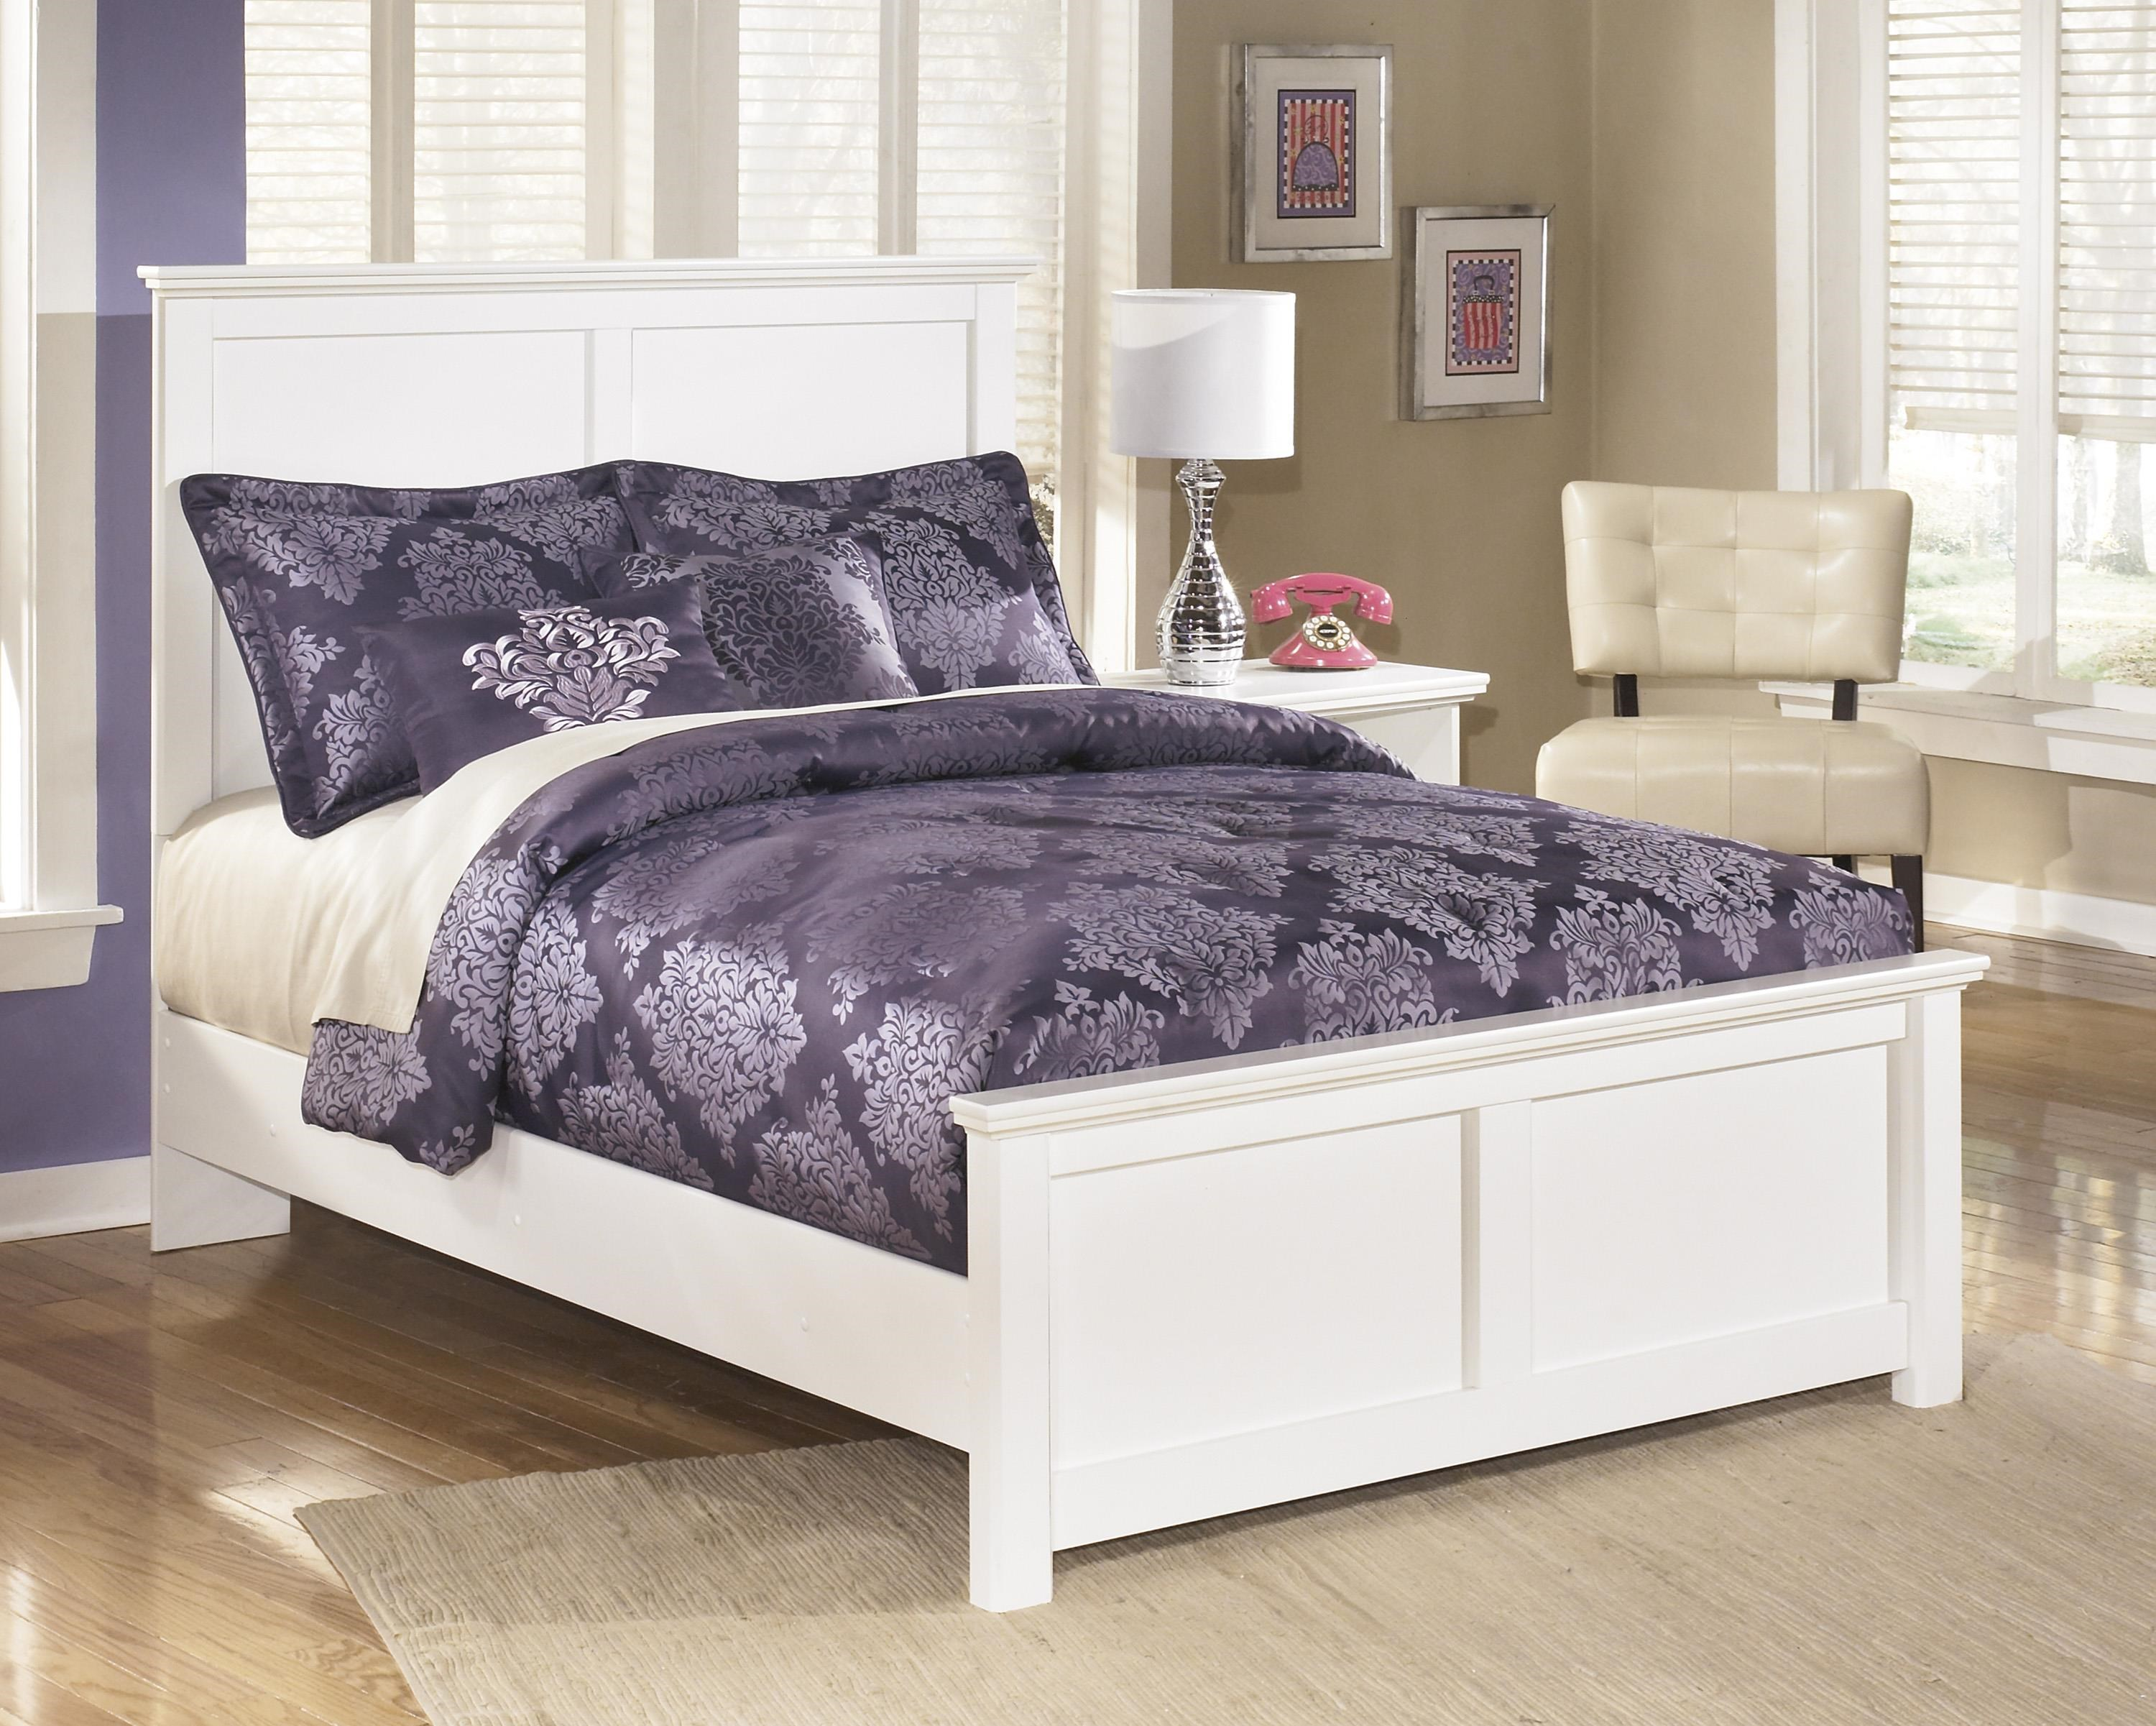 Twin Panel Headboard, Chest and Nightstand P